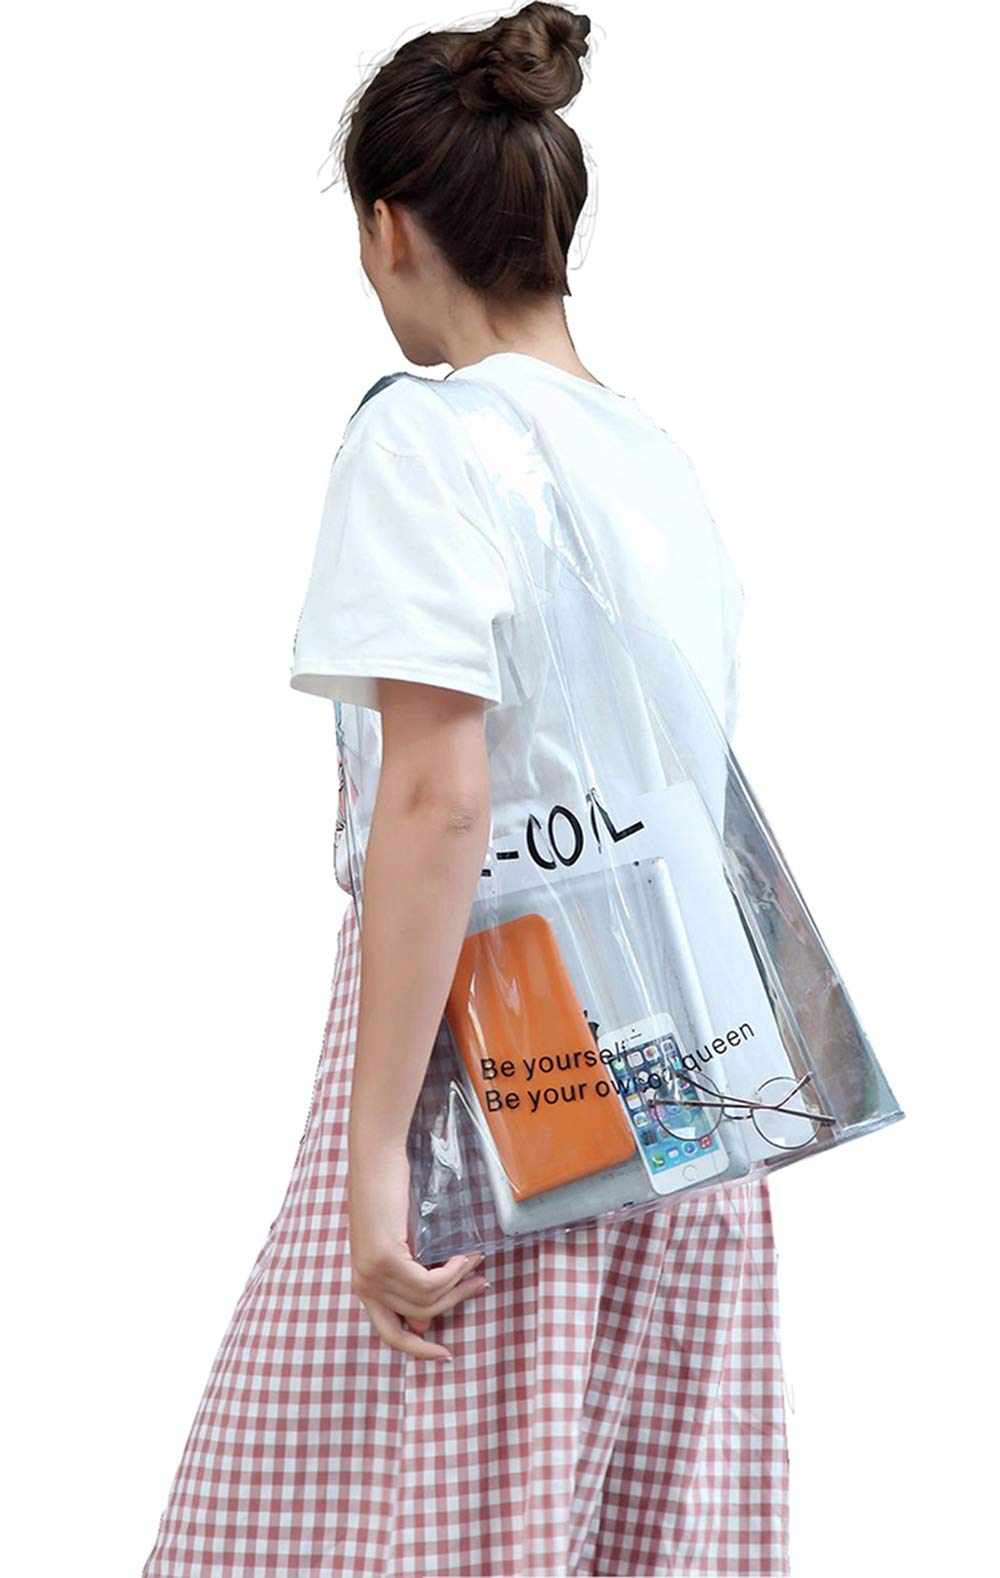 New Style PVC Transparent Handbag Shoulder Bag Shopping Bag Jelly Bag Beach Bags For Women,Girls Clear Totes (White)